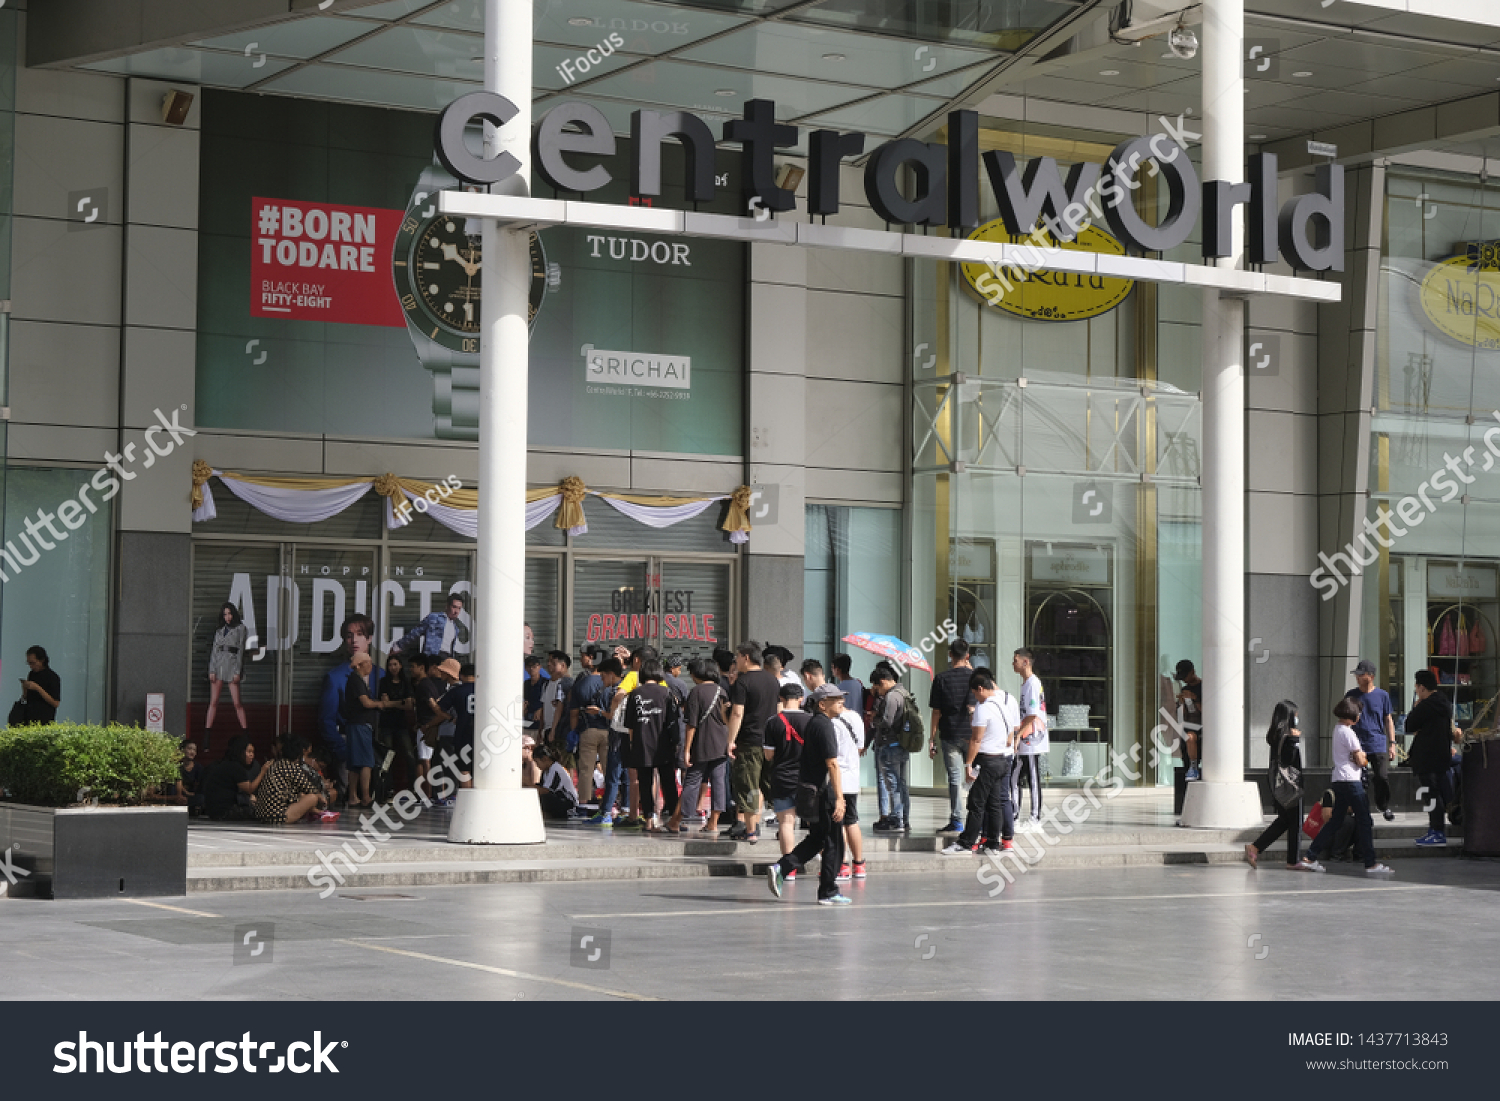 BANGKOK, THAILAND - JUNE 29, 2019: People line up in front of shopping-mall CentralWorld on June 29, 2019 in Bangkok, Thailand.